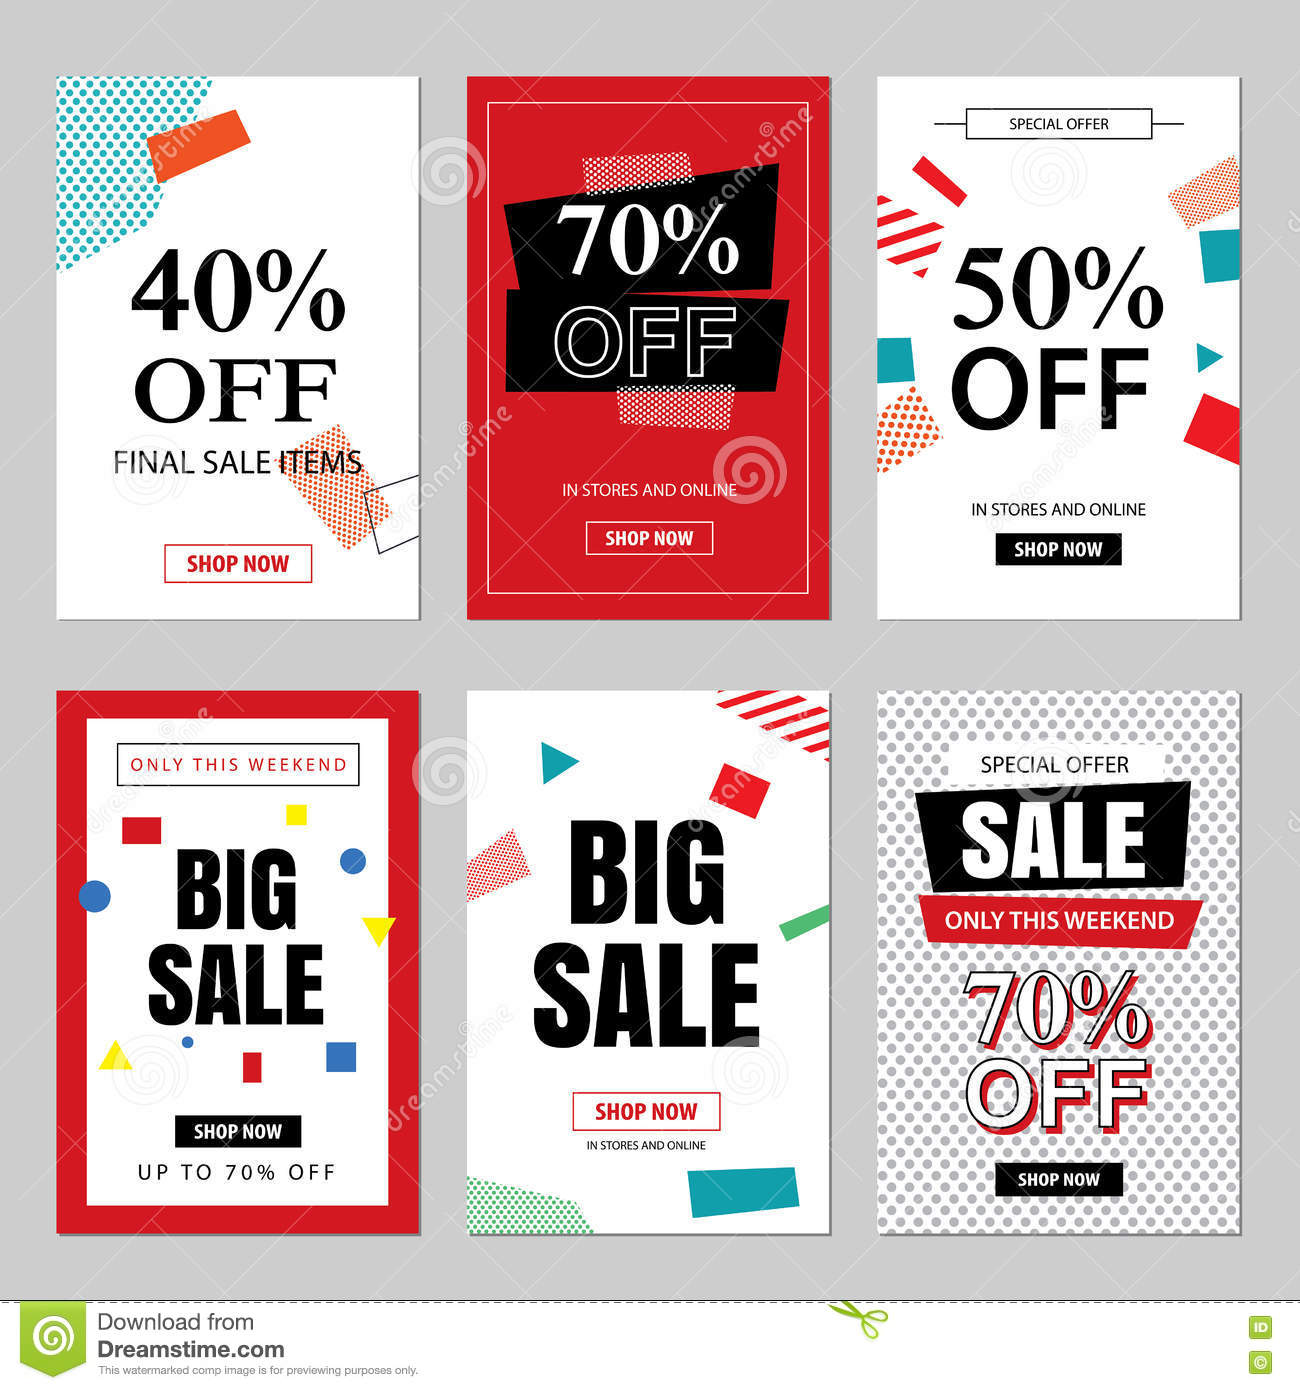 4c2a91e33 Set of sale website banner templates.Social media banners for online  shopping. Vector illustrations for posters, email and newsletter designs,  ads, ...